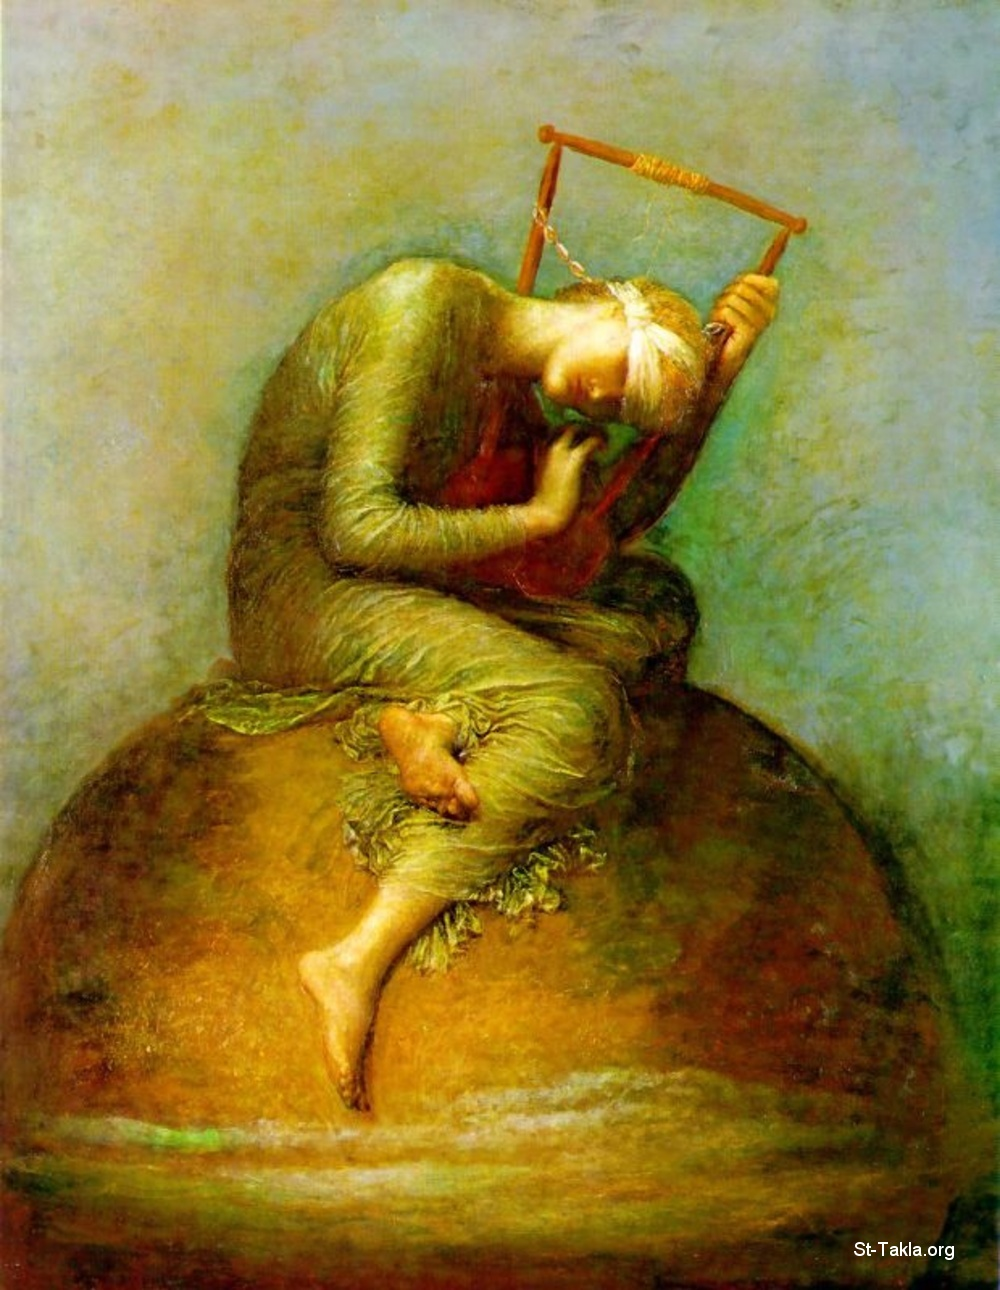 "St-Takla.org Image: Hope, Symbolist oil painting by George Frederic Watts, 1886, 144.2 x 111.8 cm, Tate National Gallery, London - shows a female allegorical figure of Hope, sitting on a globe, blindfold, clutching a wooden lyre with only one string left intact. She sits in a hunched position, with her head leaning towards the instrument, perhaps so she can hear the faint music she can make with the sole remaining string ���� �� ���� ������ ����: ���� ����� �� ���� ������ ��� ������ ���� ������� ���ӡ 1886� ����� 144.2�111.8 �� ������ �� ���� ���� ���� ������ (����� ������� ������)� ���� - ������� ��� ���� �� ������ ���� ""�����""� ����� ��� ��� ����ɡ ����� ������� ����� �� ������ ����ɡ ��� ��� ���� ���� ������ ����� ������ ��� ������ ������ ����� ���� ����� ��������ɡ ���� ����� ����� ������ ���� ������ ���� �� ���� ����� ������ �������"